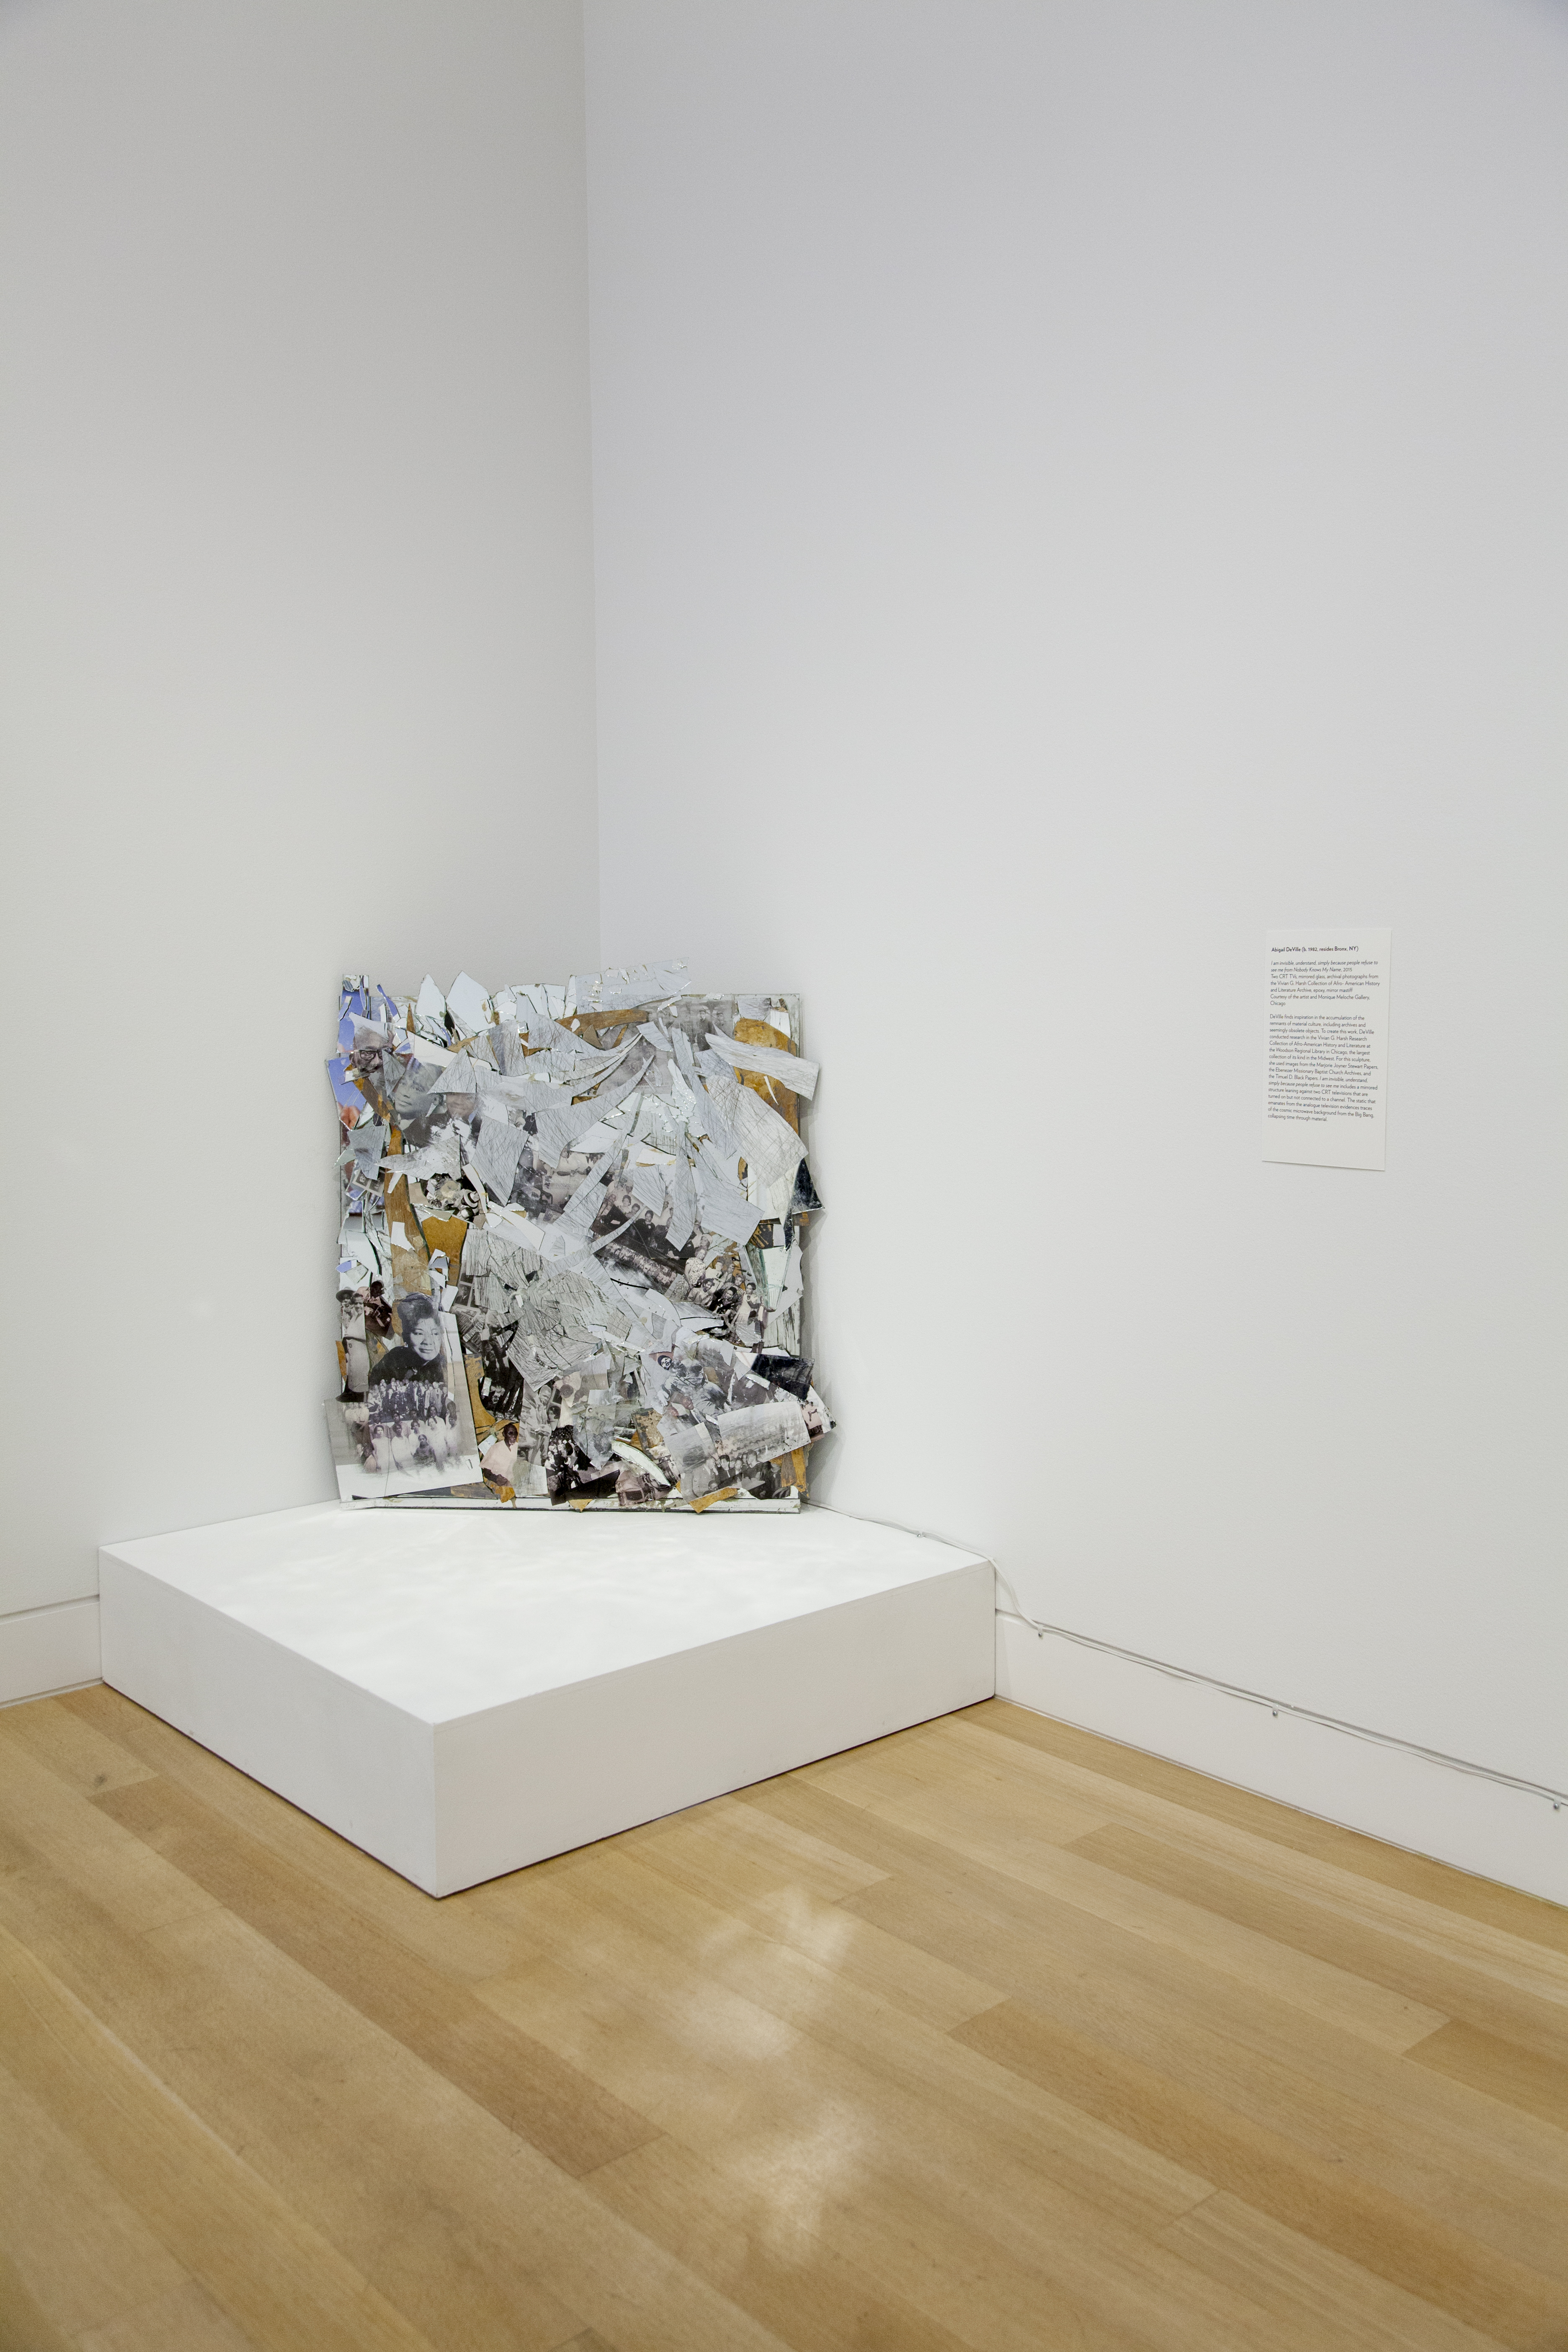 Image: Abigail DeVille, I am invisible, understand, simply because people refuse to see me from Nobody Knows My Name, 2015 [installation view]. A collage of shattered glass and imagery covers a gutted television leaning against the corner of a room. Image courtesy of DePaul Art Museum.